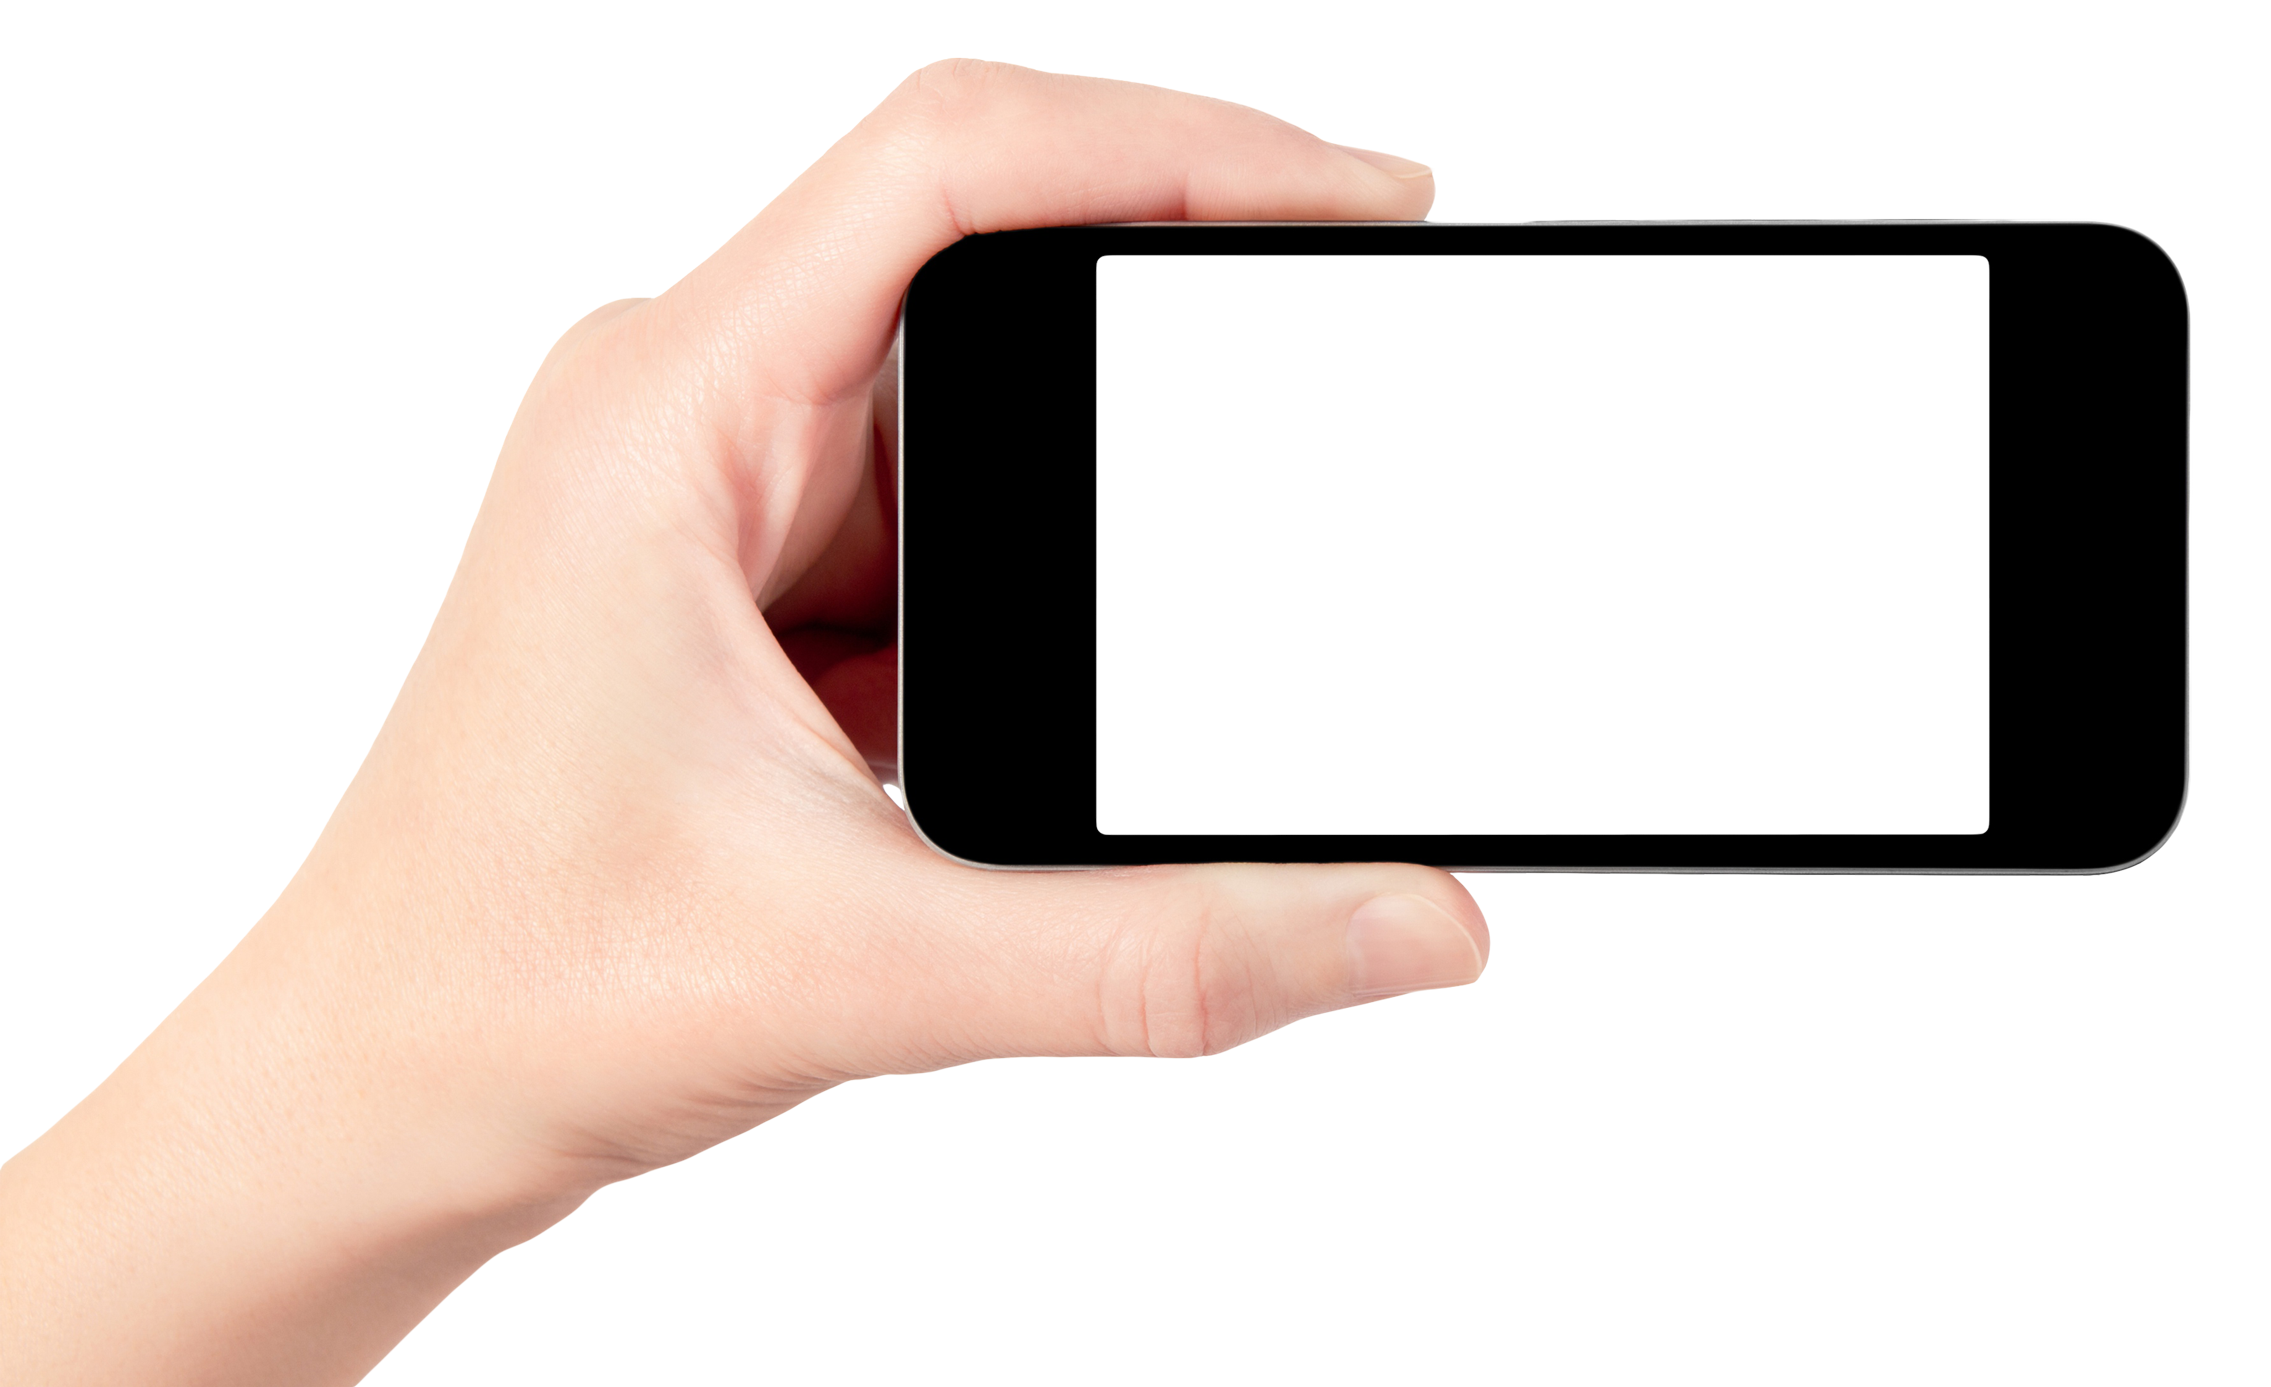 Phone in hand PNG images free download.